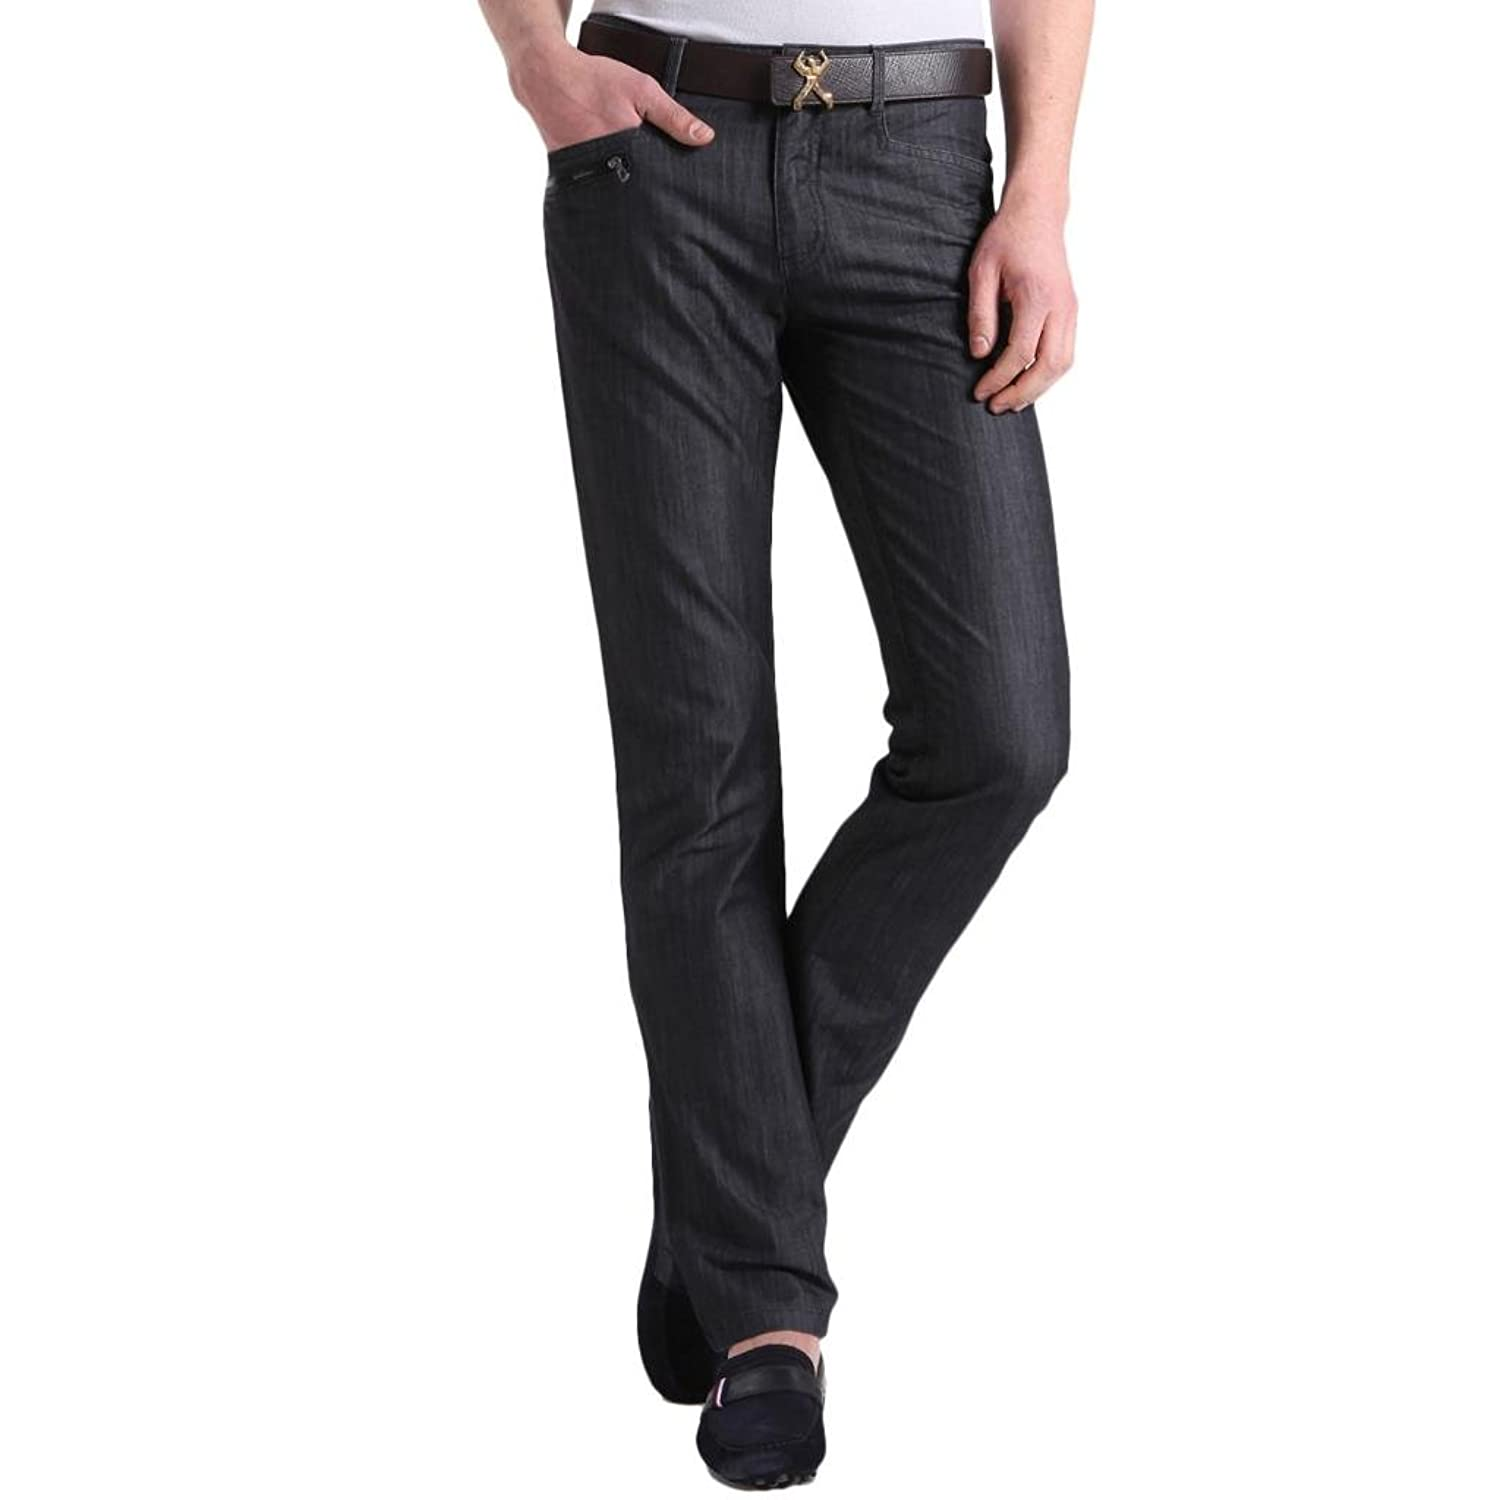 K-BOXING Men's Fall Plain Cotton Straight Solid Classic Denim Pants